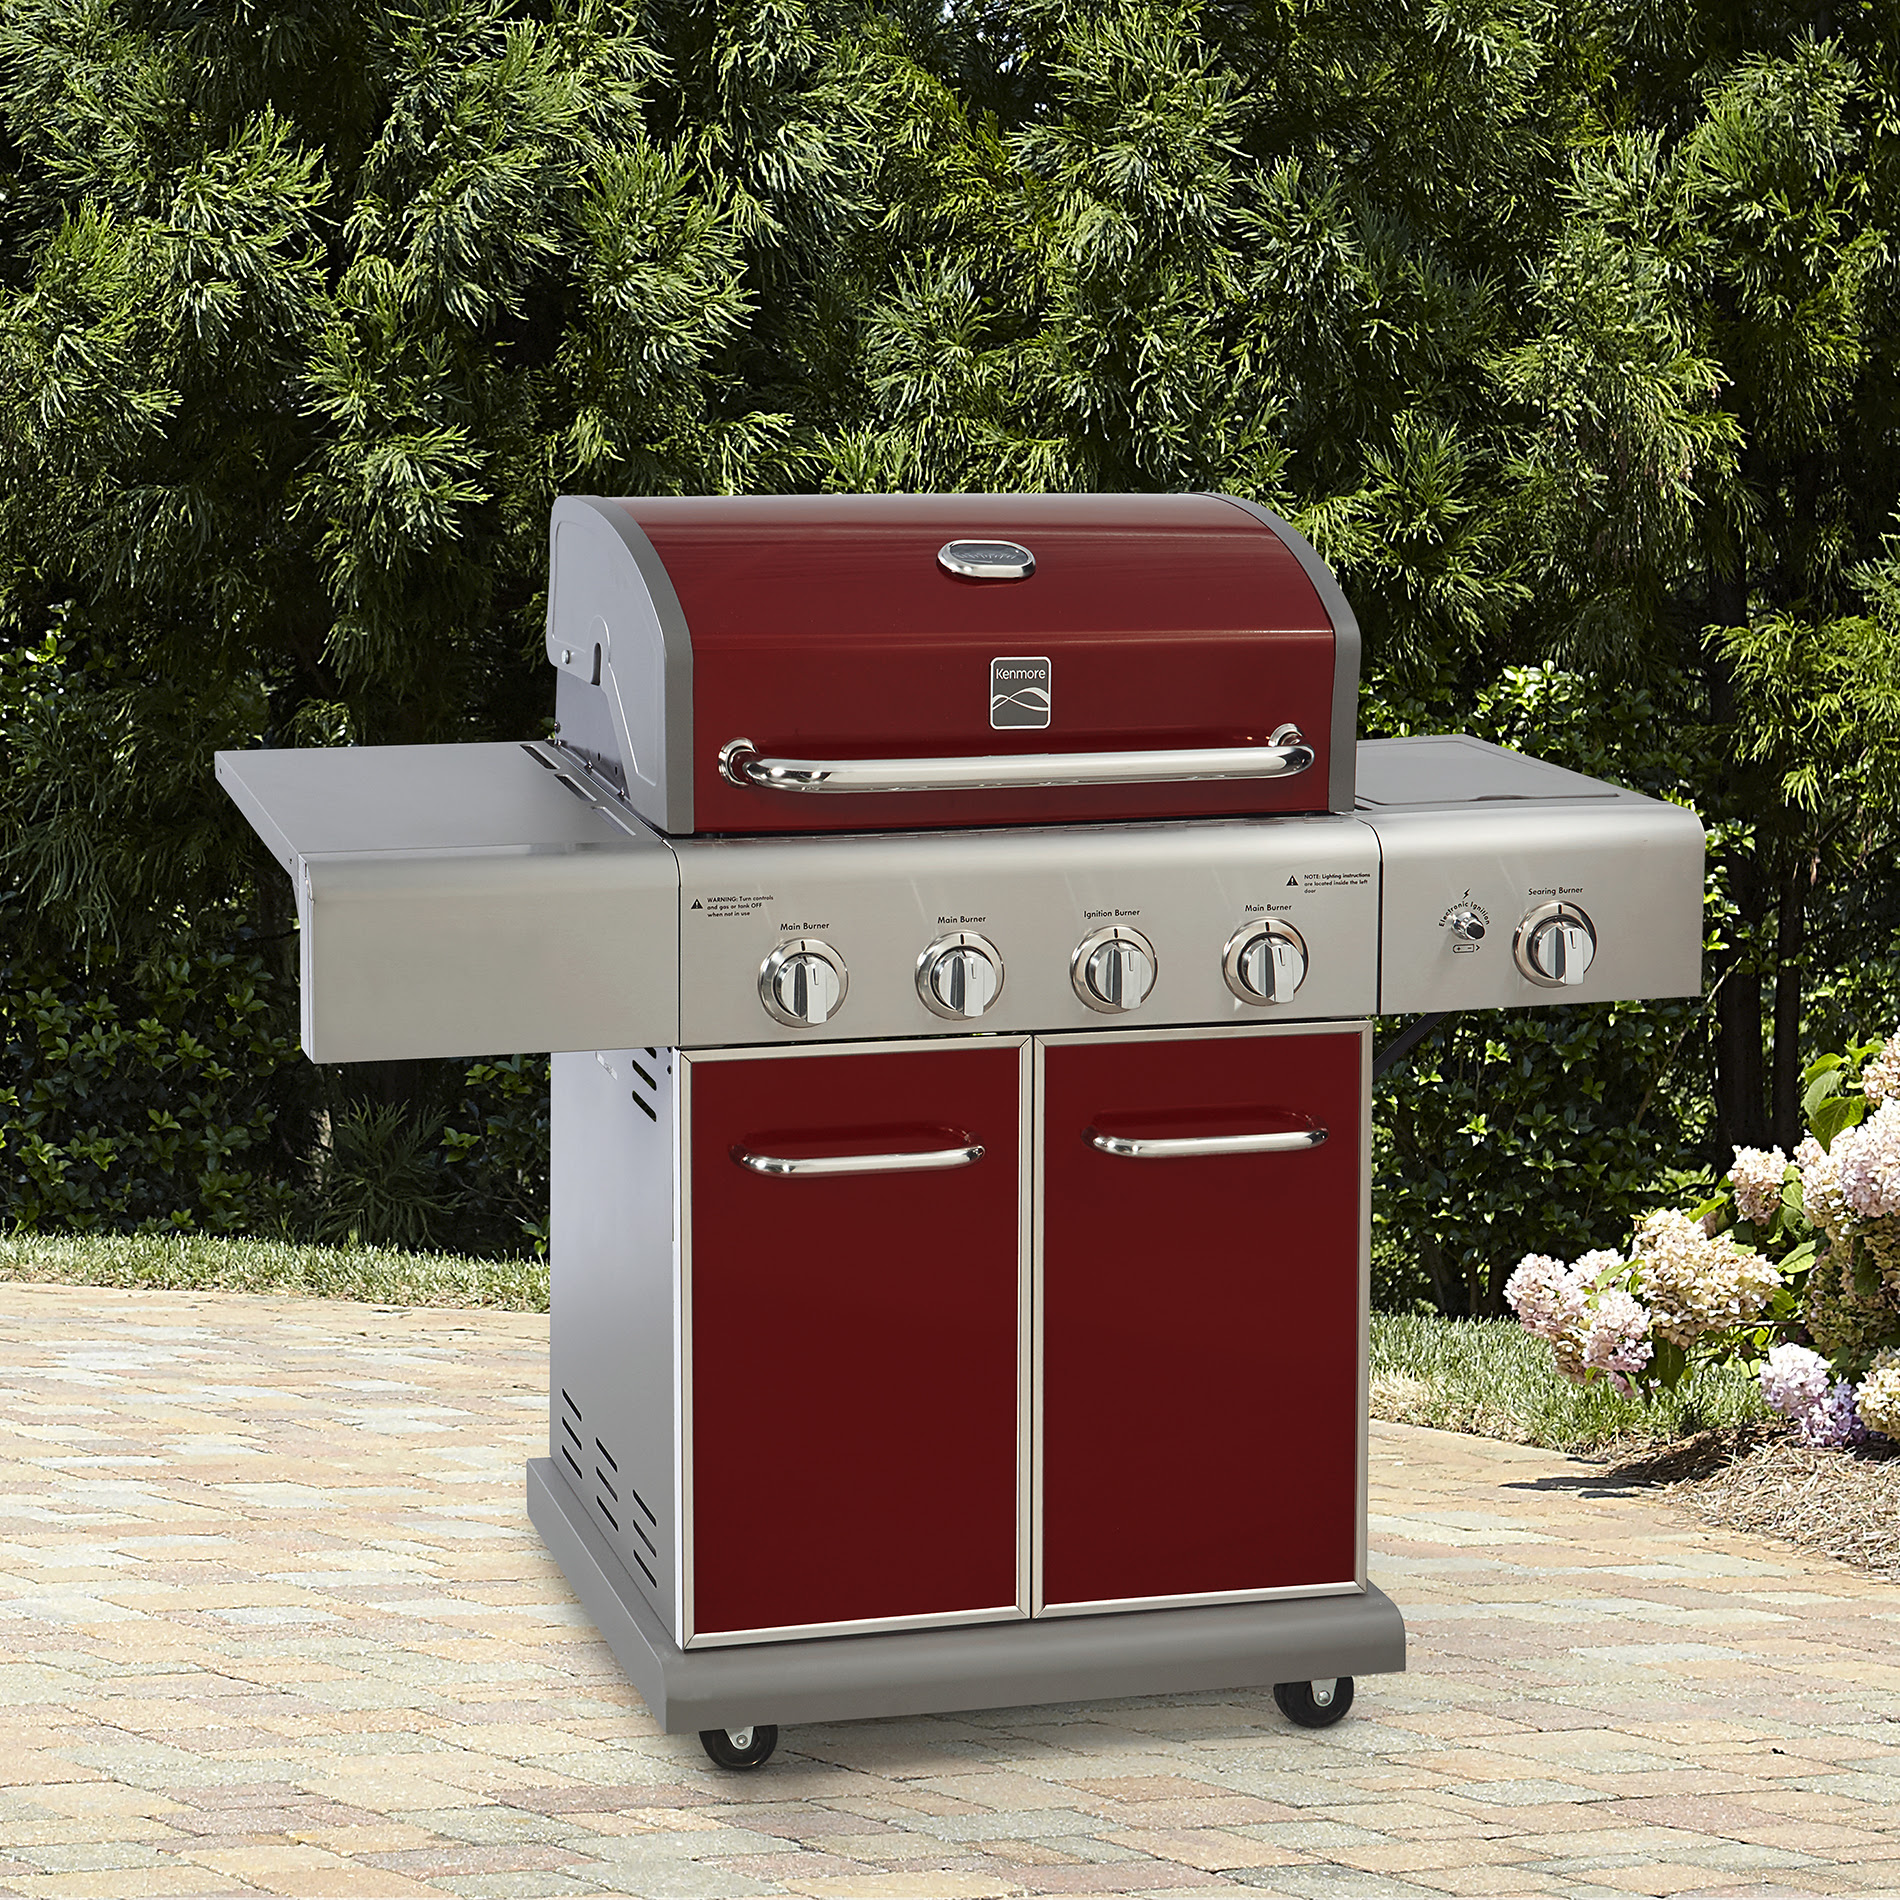 Kenmore 4 Burner LP Gas Grill with Side Burner Red